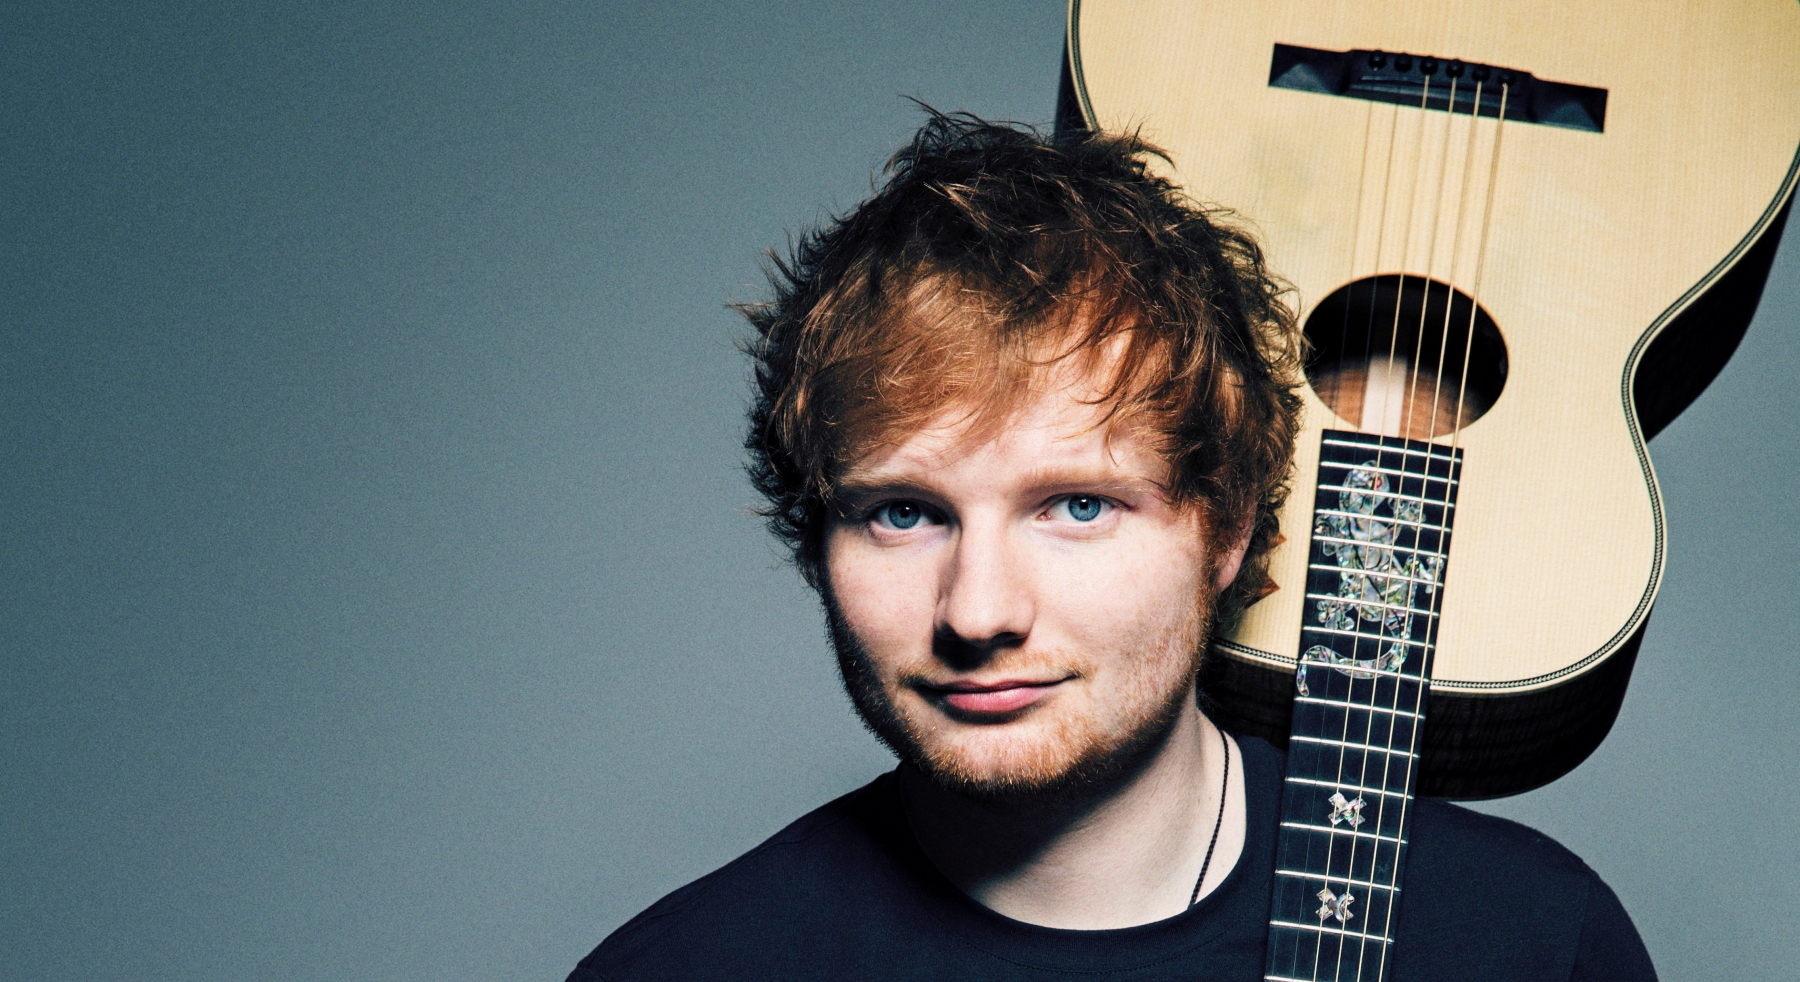 ed sheeran - photo #30